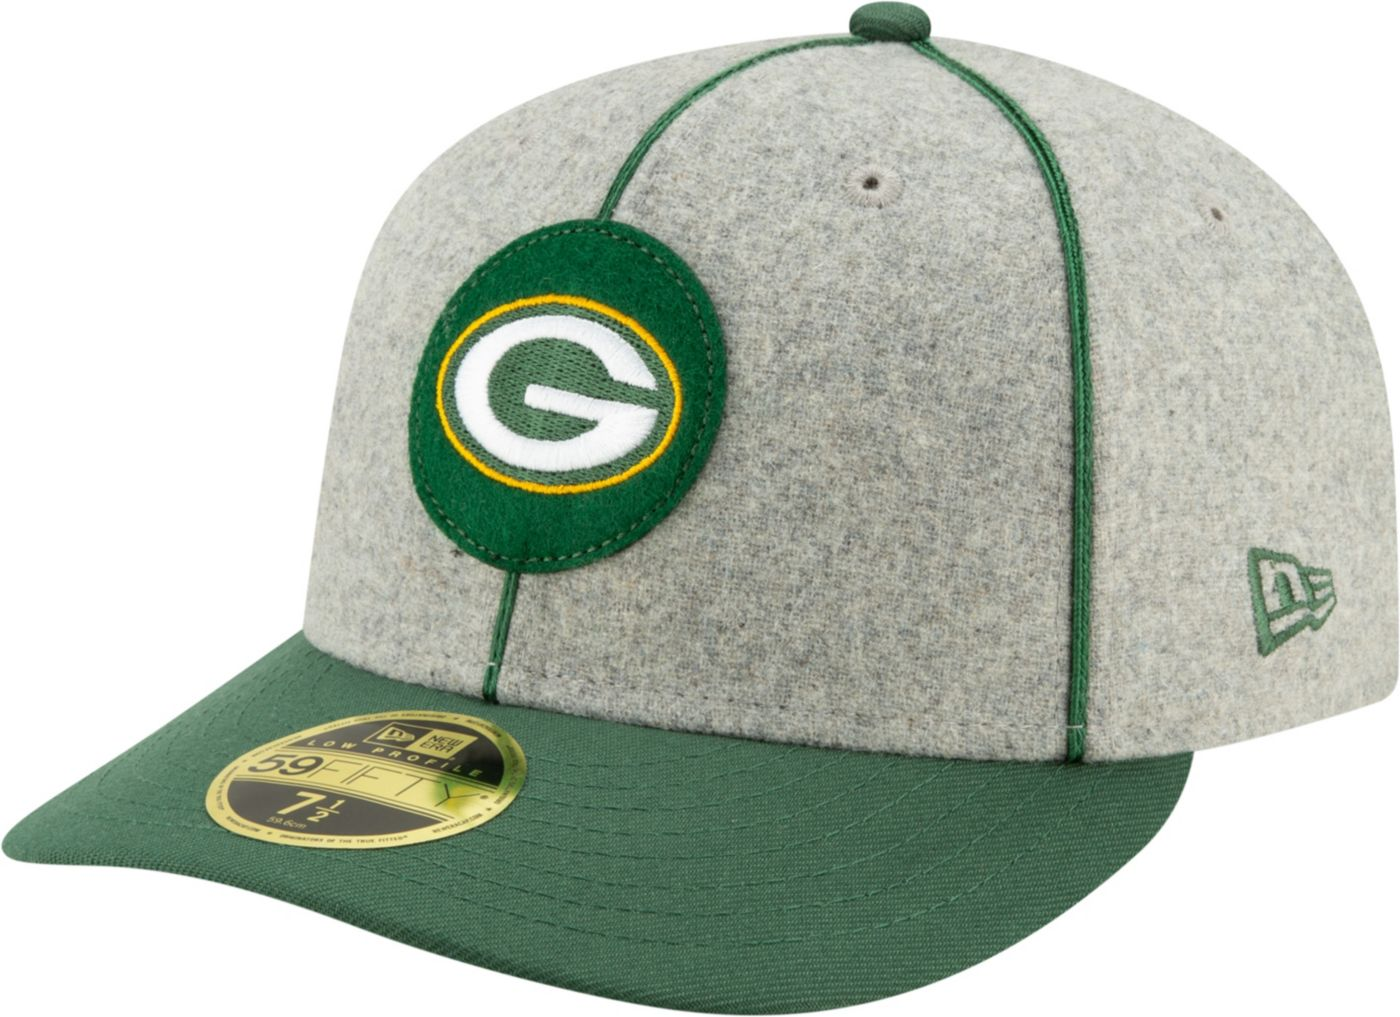 New Era Men's Green Bay Packers Sideline Home 59Fifty Fitted Hat